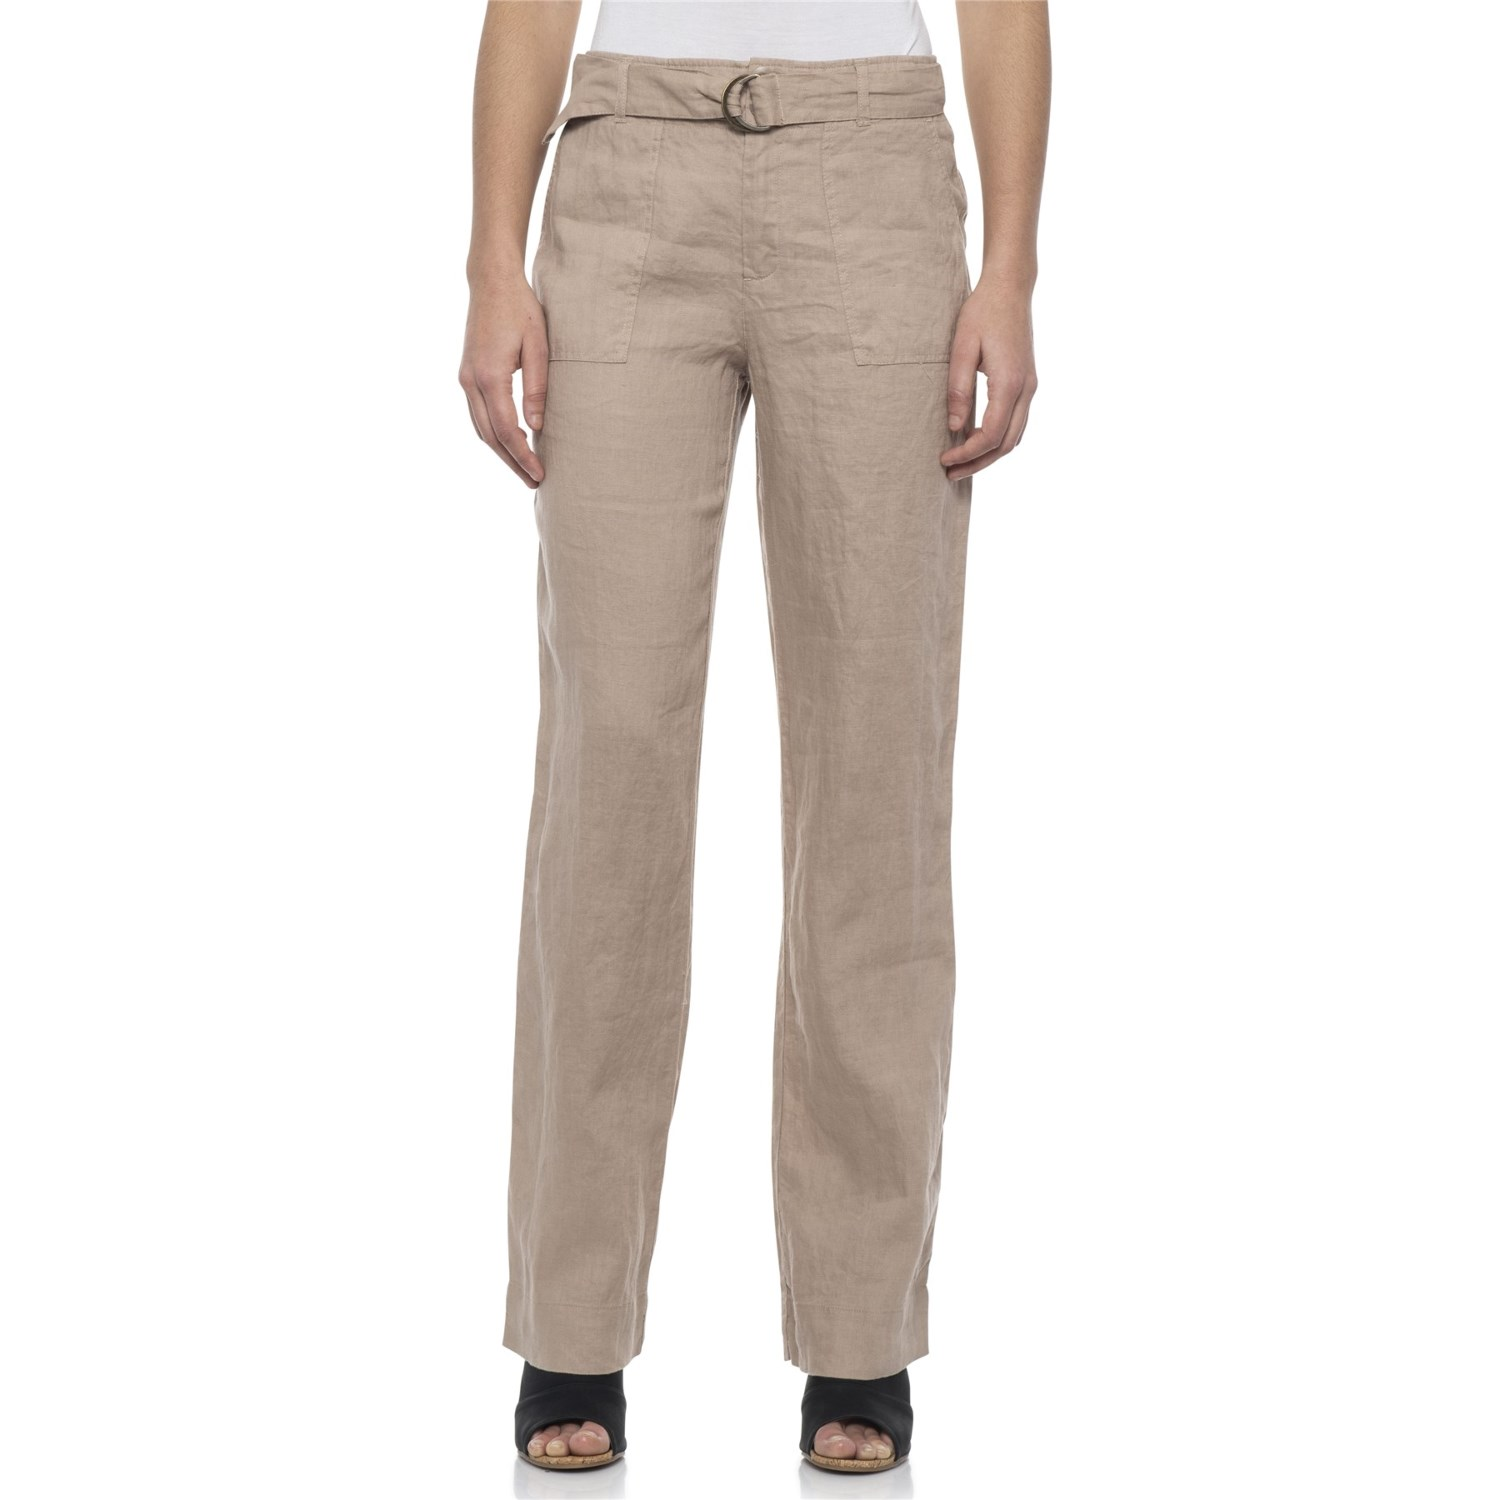 9729a8f7af Tahari Solid Fly-Front Belted Pants - Linen (For Women) in Sunroom ...